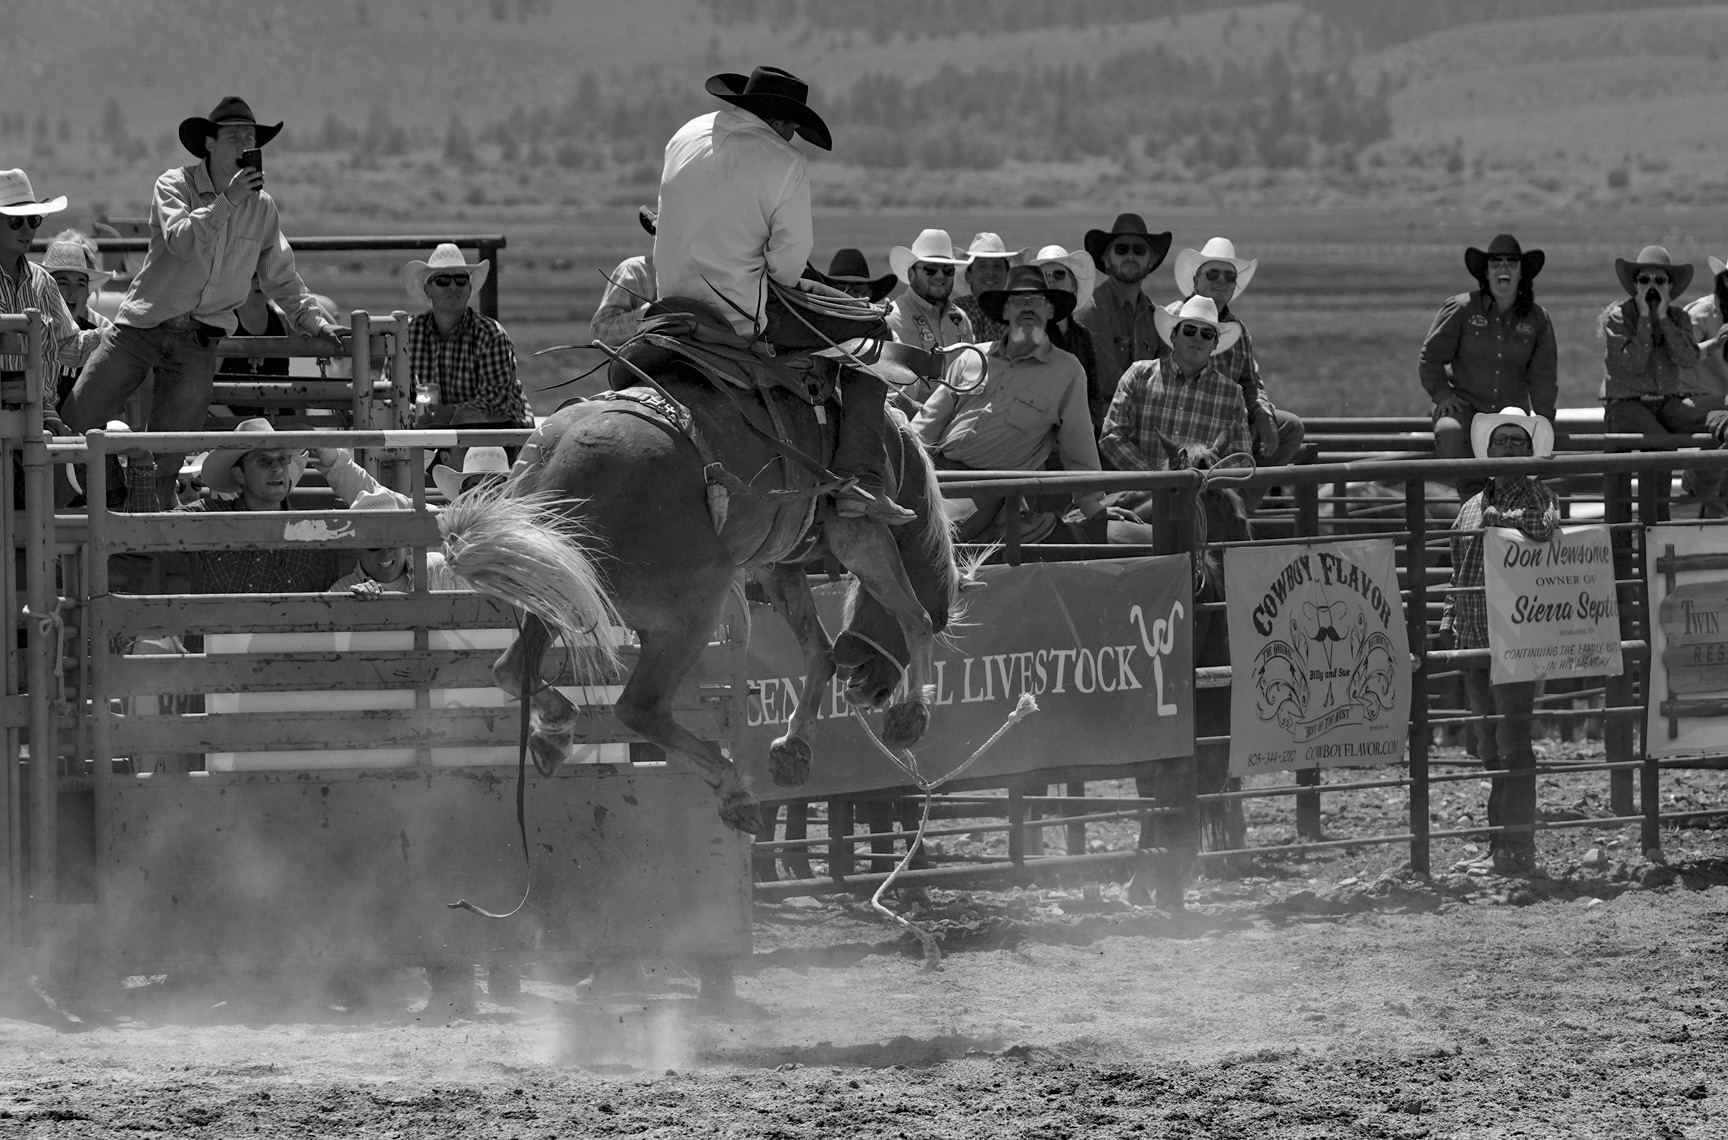 Roadtripping_BridgeportRodeo_WildOneOutTheGate_BroncRider04_Action_Personal_Retouched_Web